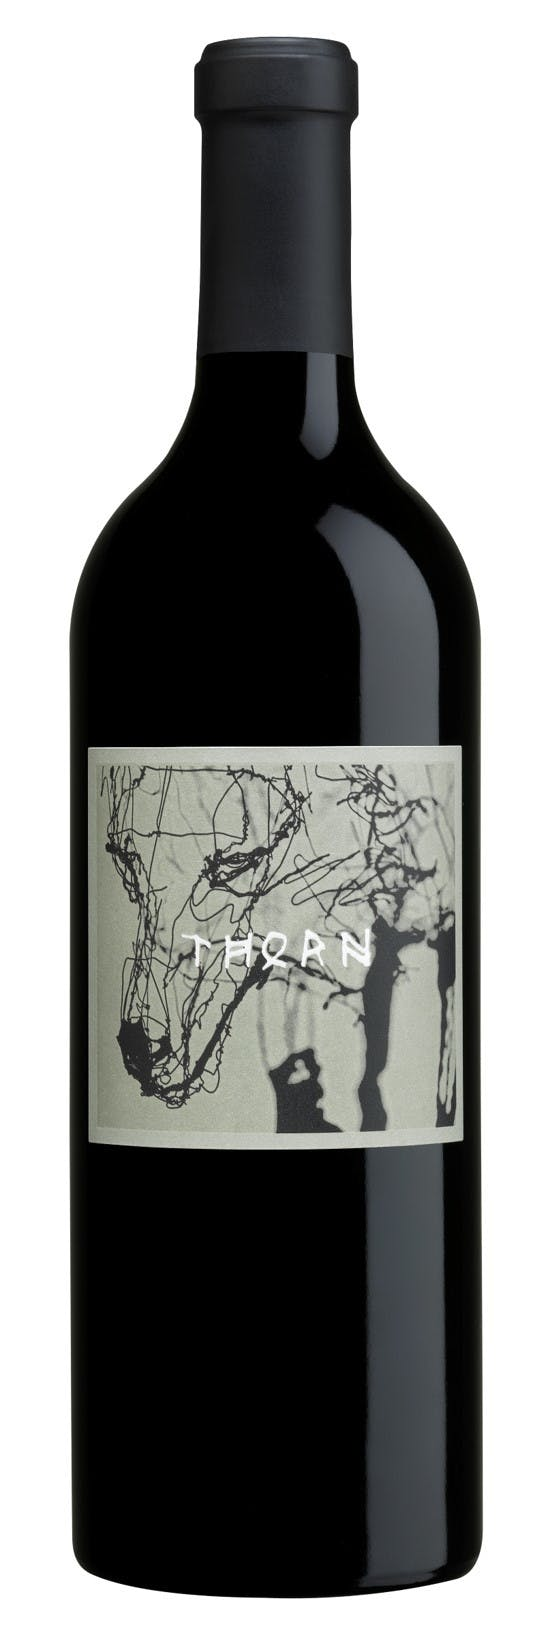 The Prisoner Wine Company Thorn Merlot 2014 Station